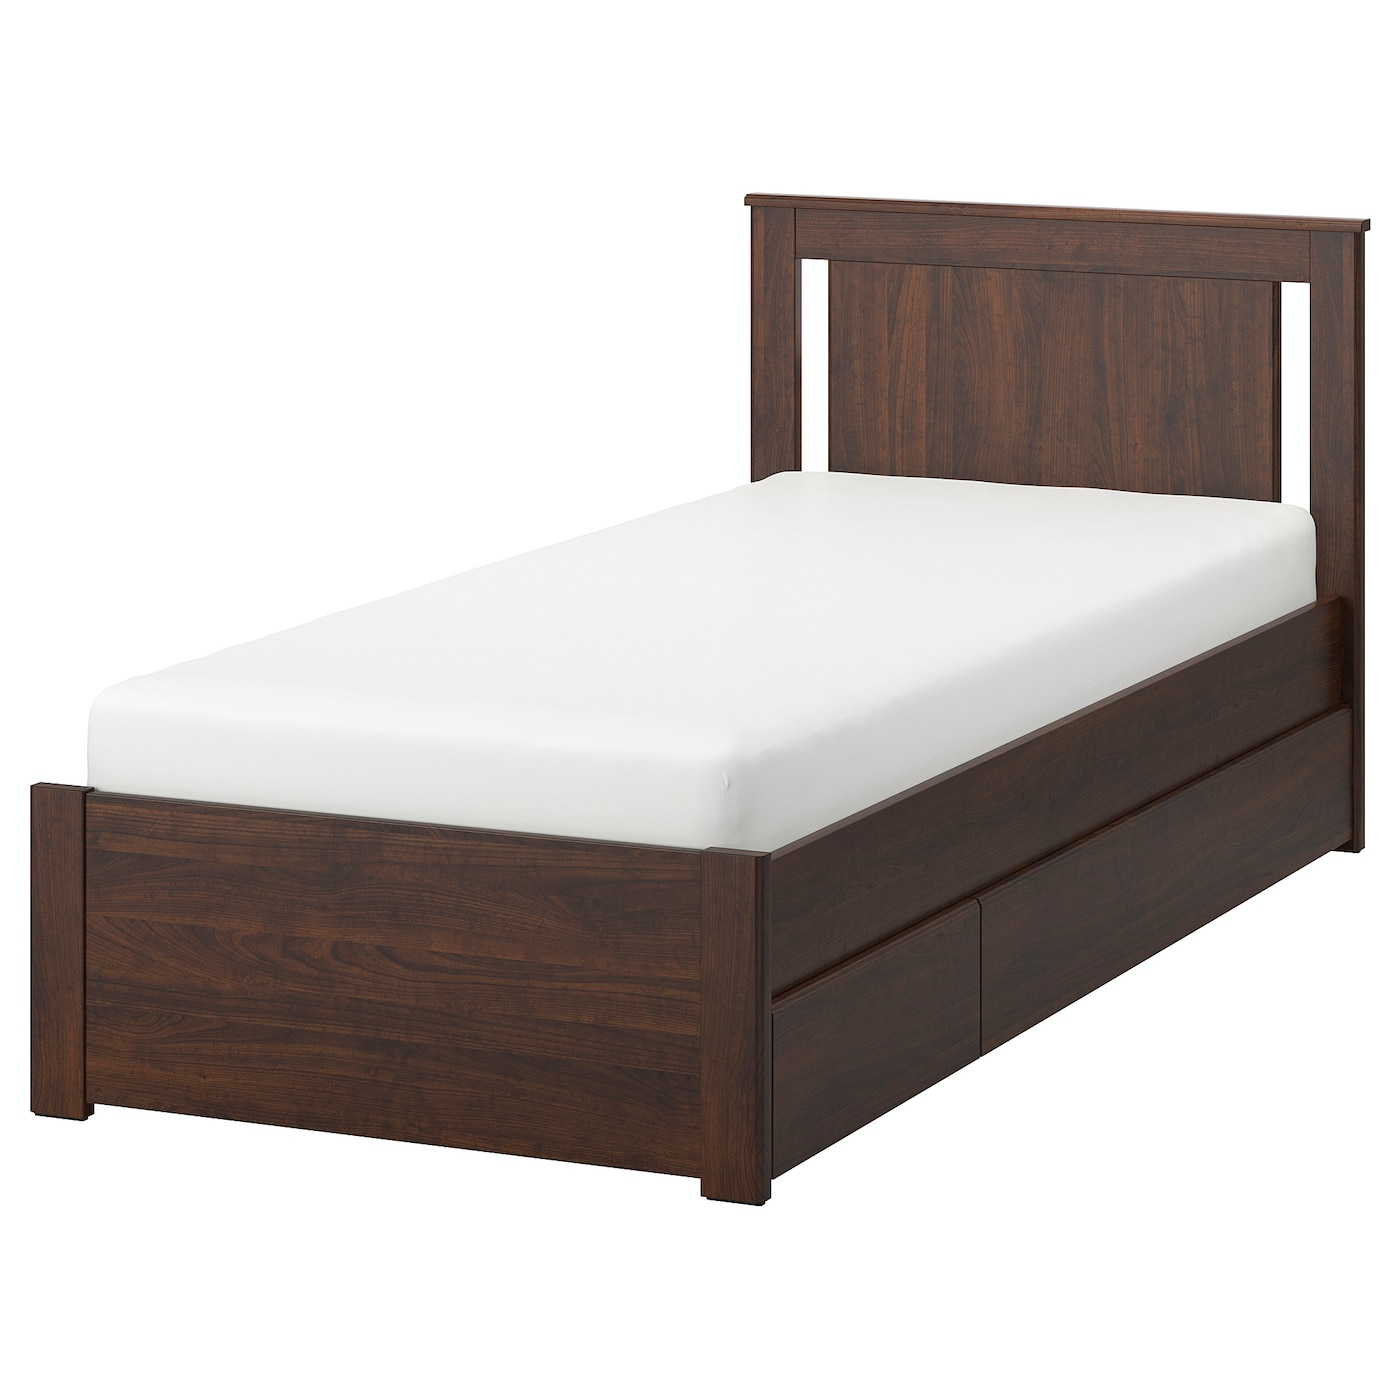 Bed frame with 2 storage boxes SONGESAND brown, Luröy